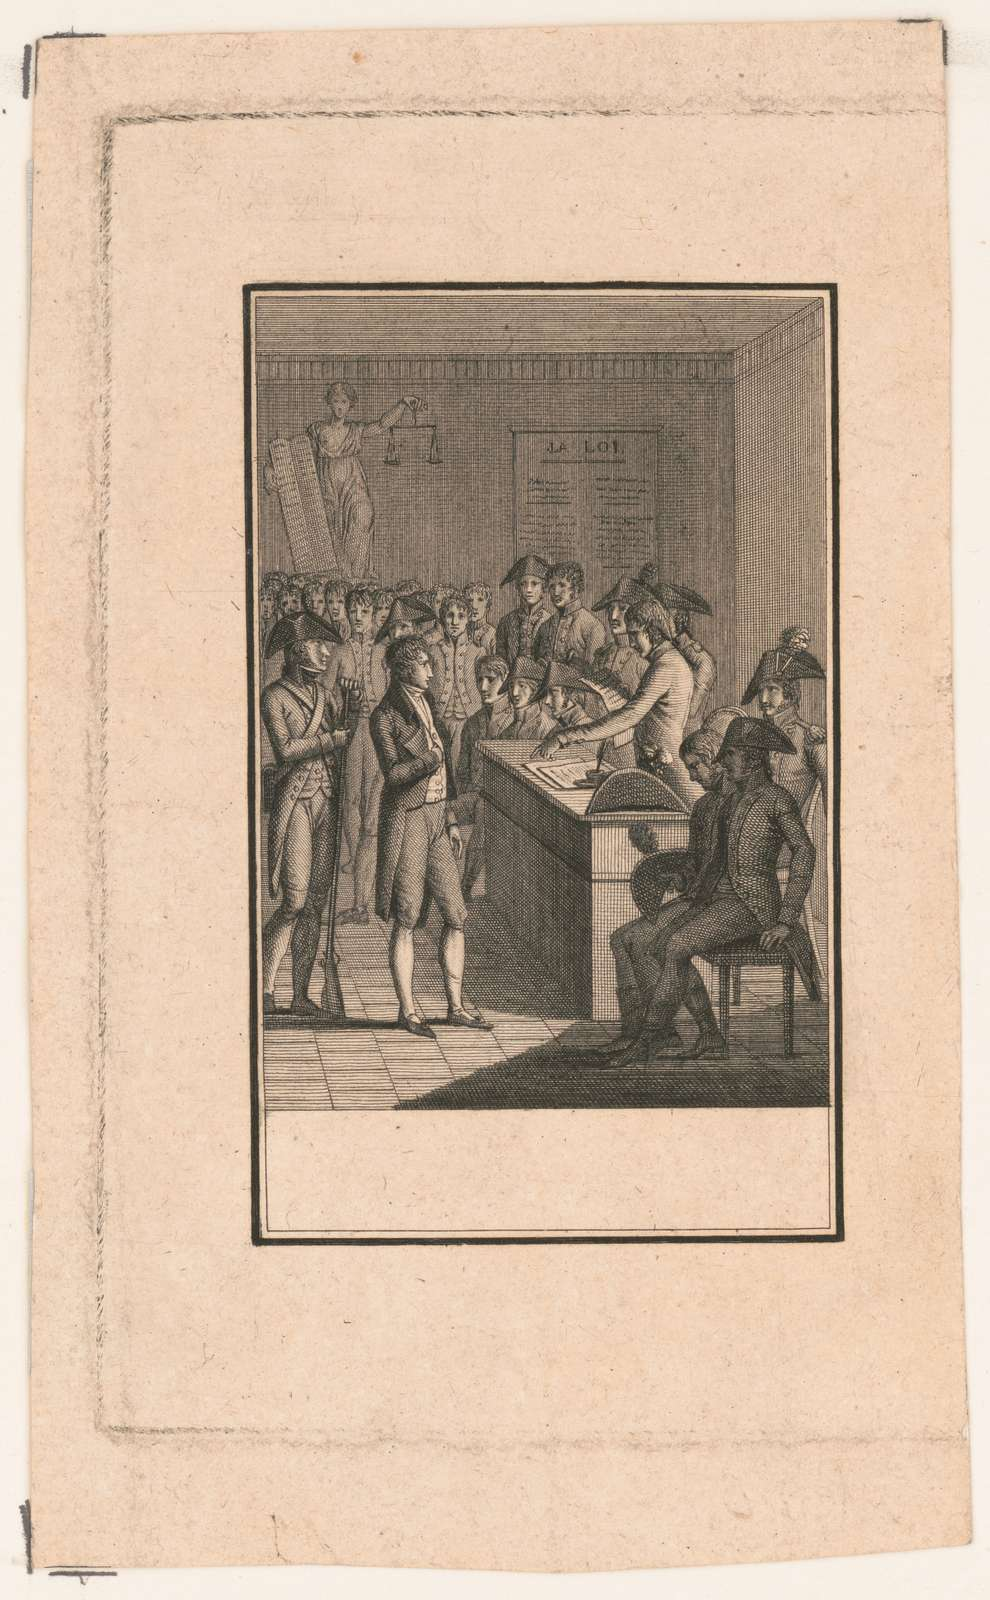 [Court scene, possibly during the reign of terror, with the accused man standing before the revolutionary tribunal]